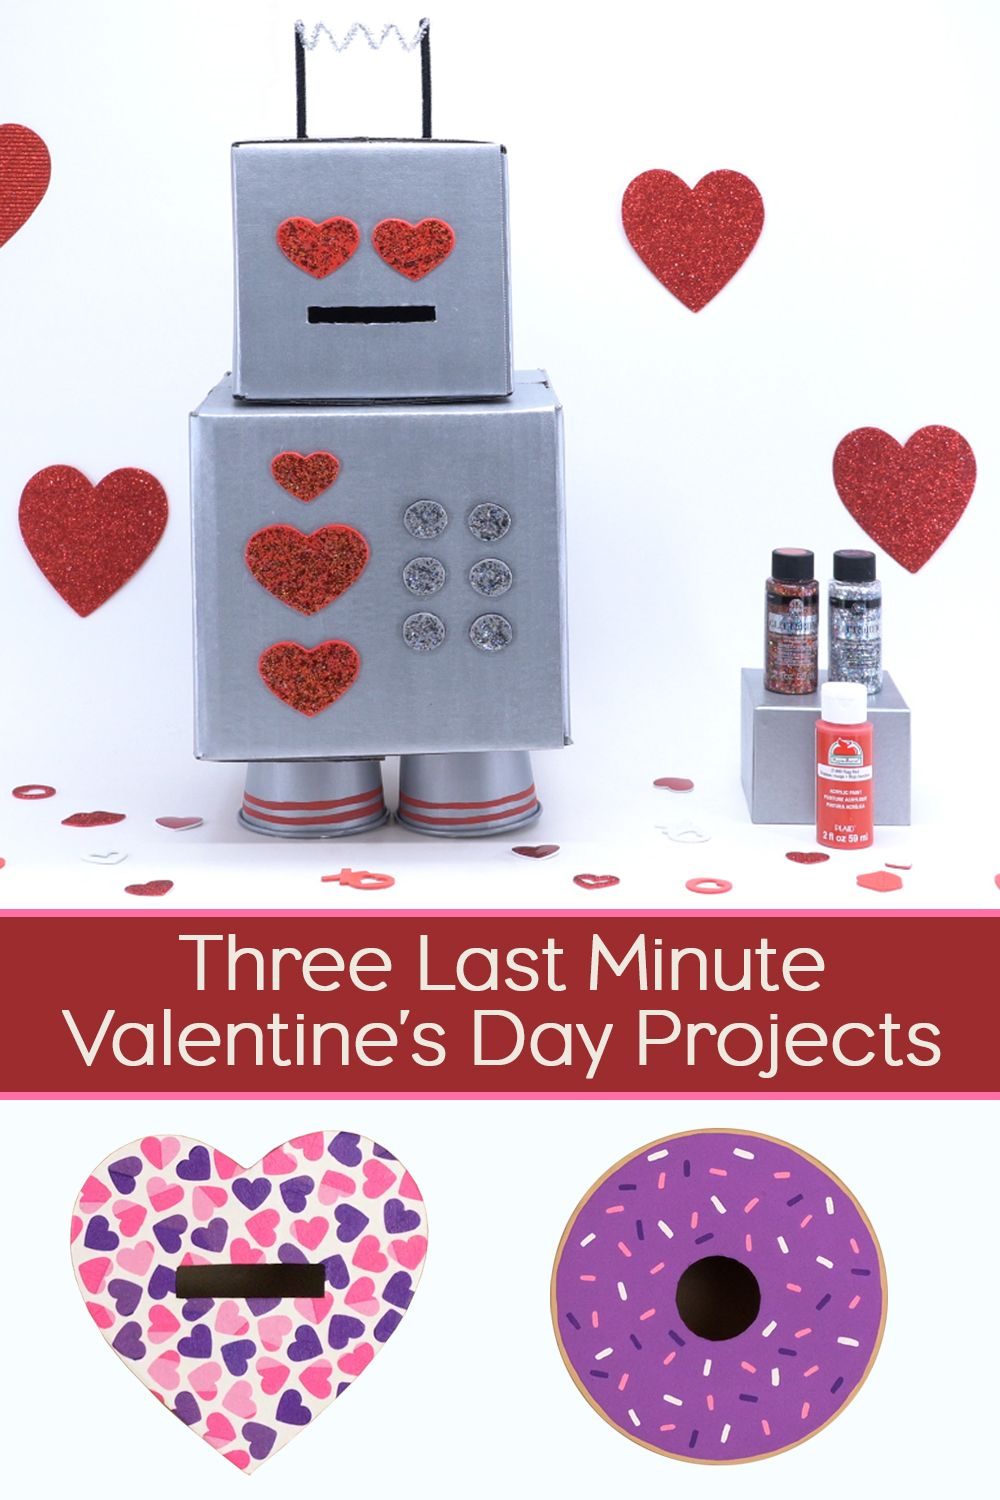 3 Last Minute Valentine S Day Projects In 2020 Valentine S Day Diy Valentines Diy Valentine Day Crafts